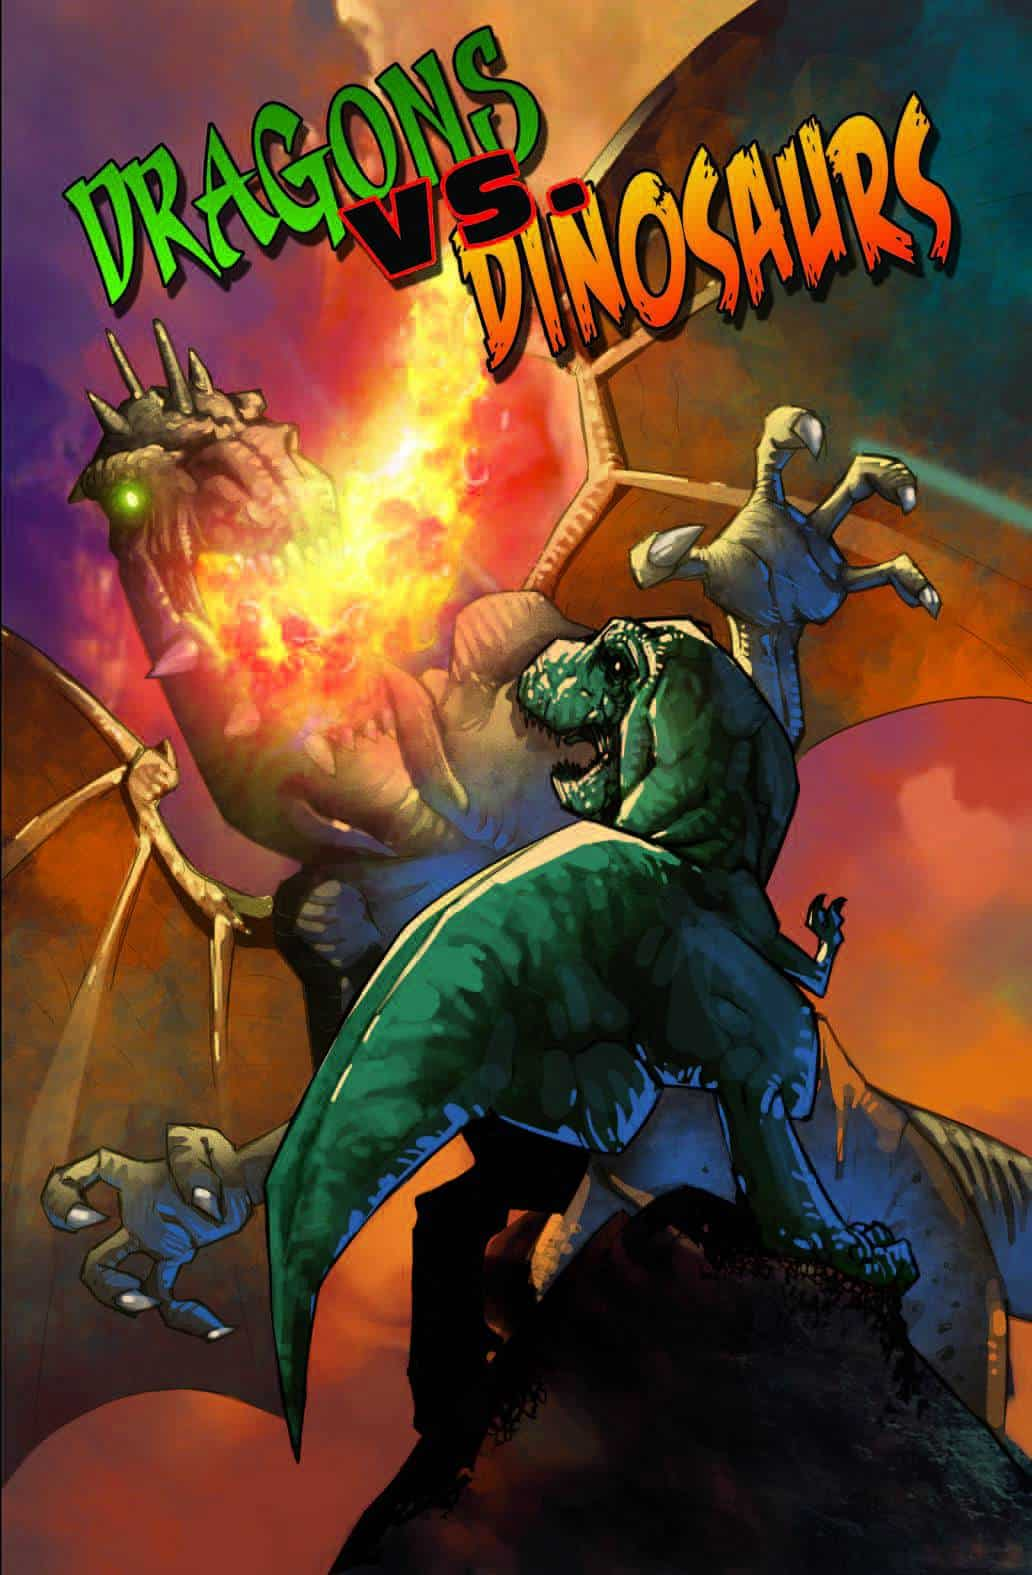 Dragons-vs-Dinosaurs-Cover